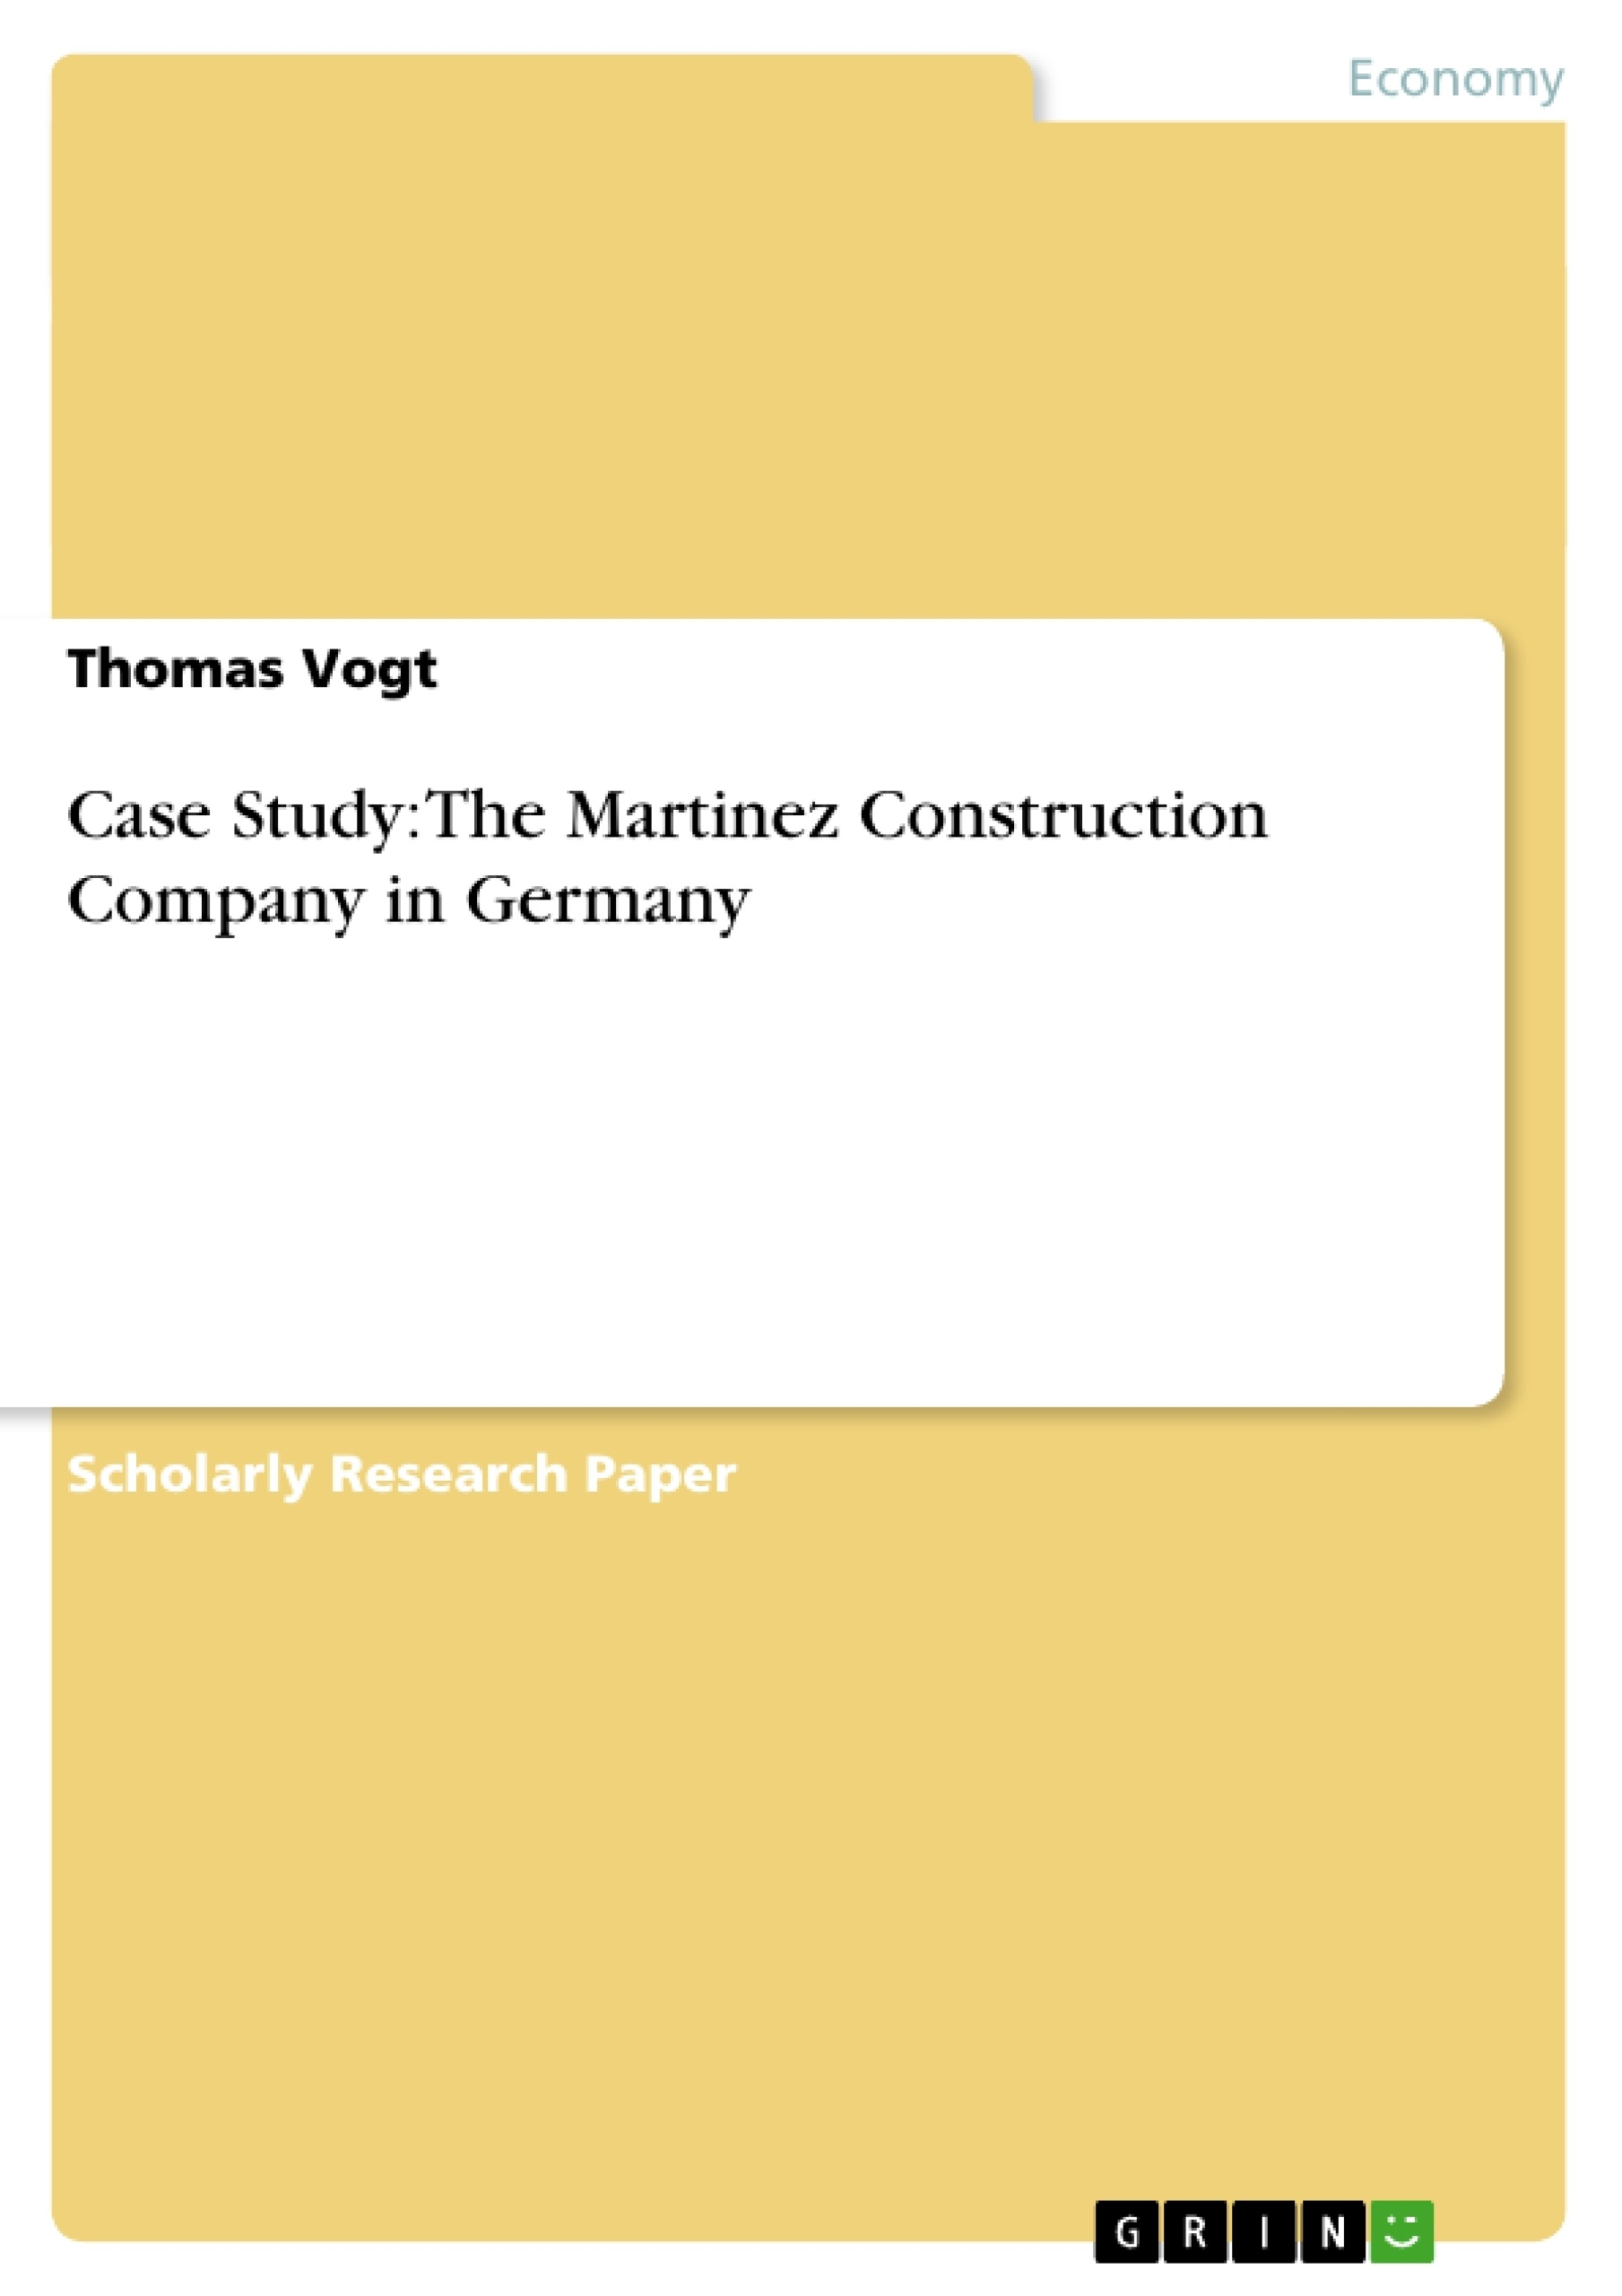 Master thesis in germany company